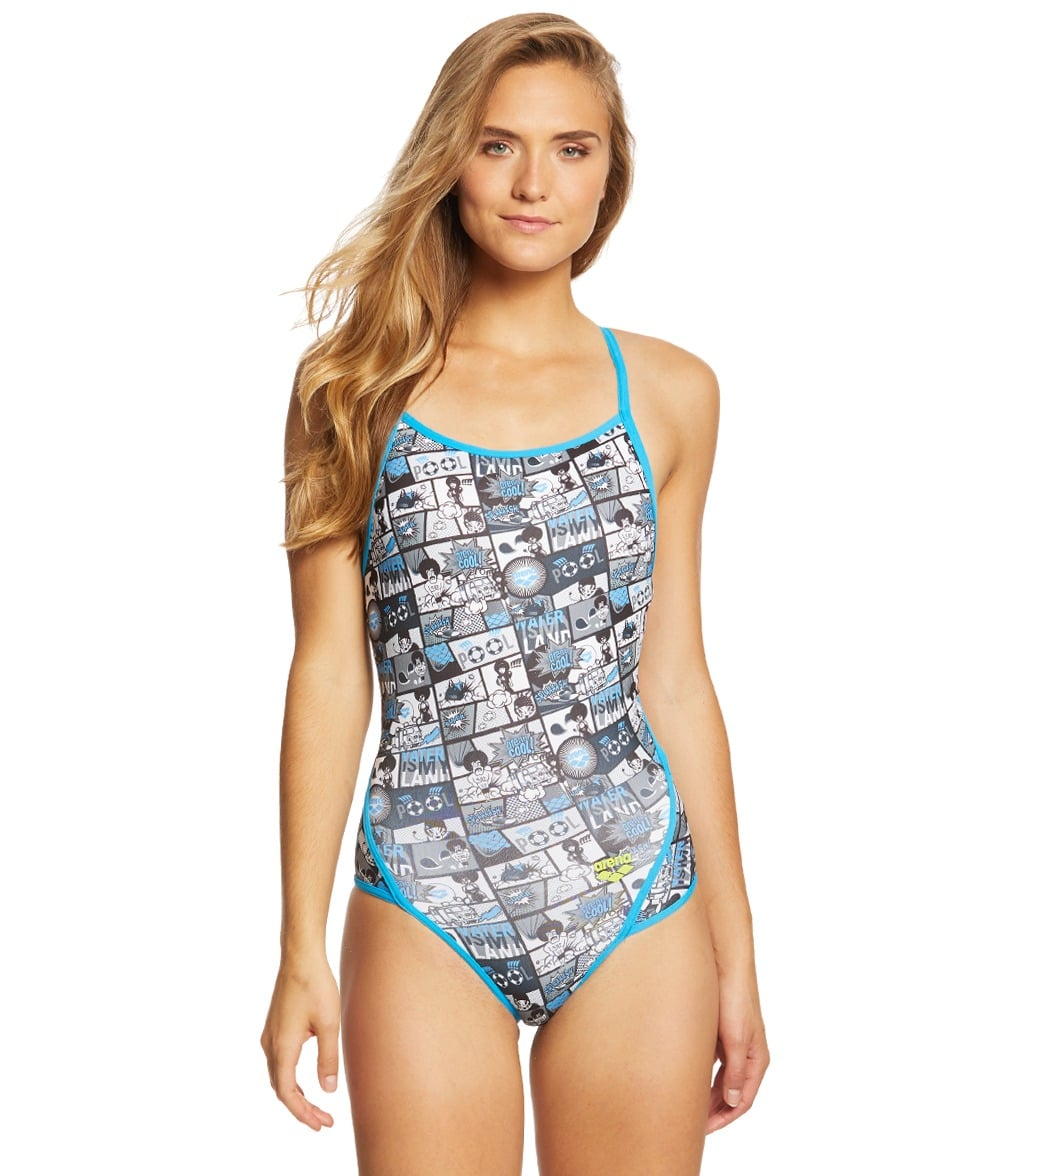 2c598de2cf52b Arena Women's Comic MaxLife SuperFly-Back One Piece Swimsuit at  SwimOutlet.com - Free Shipping